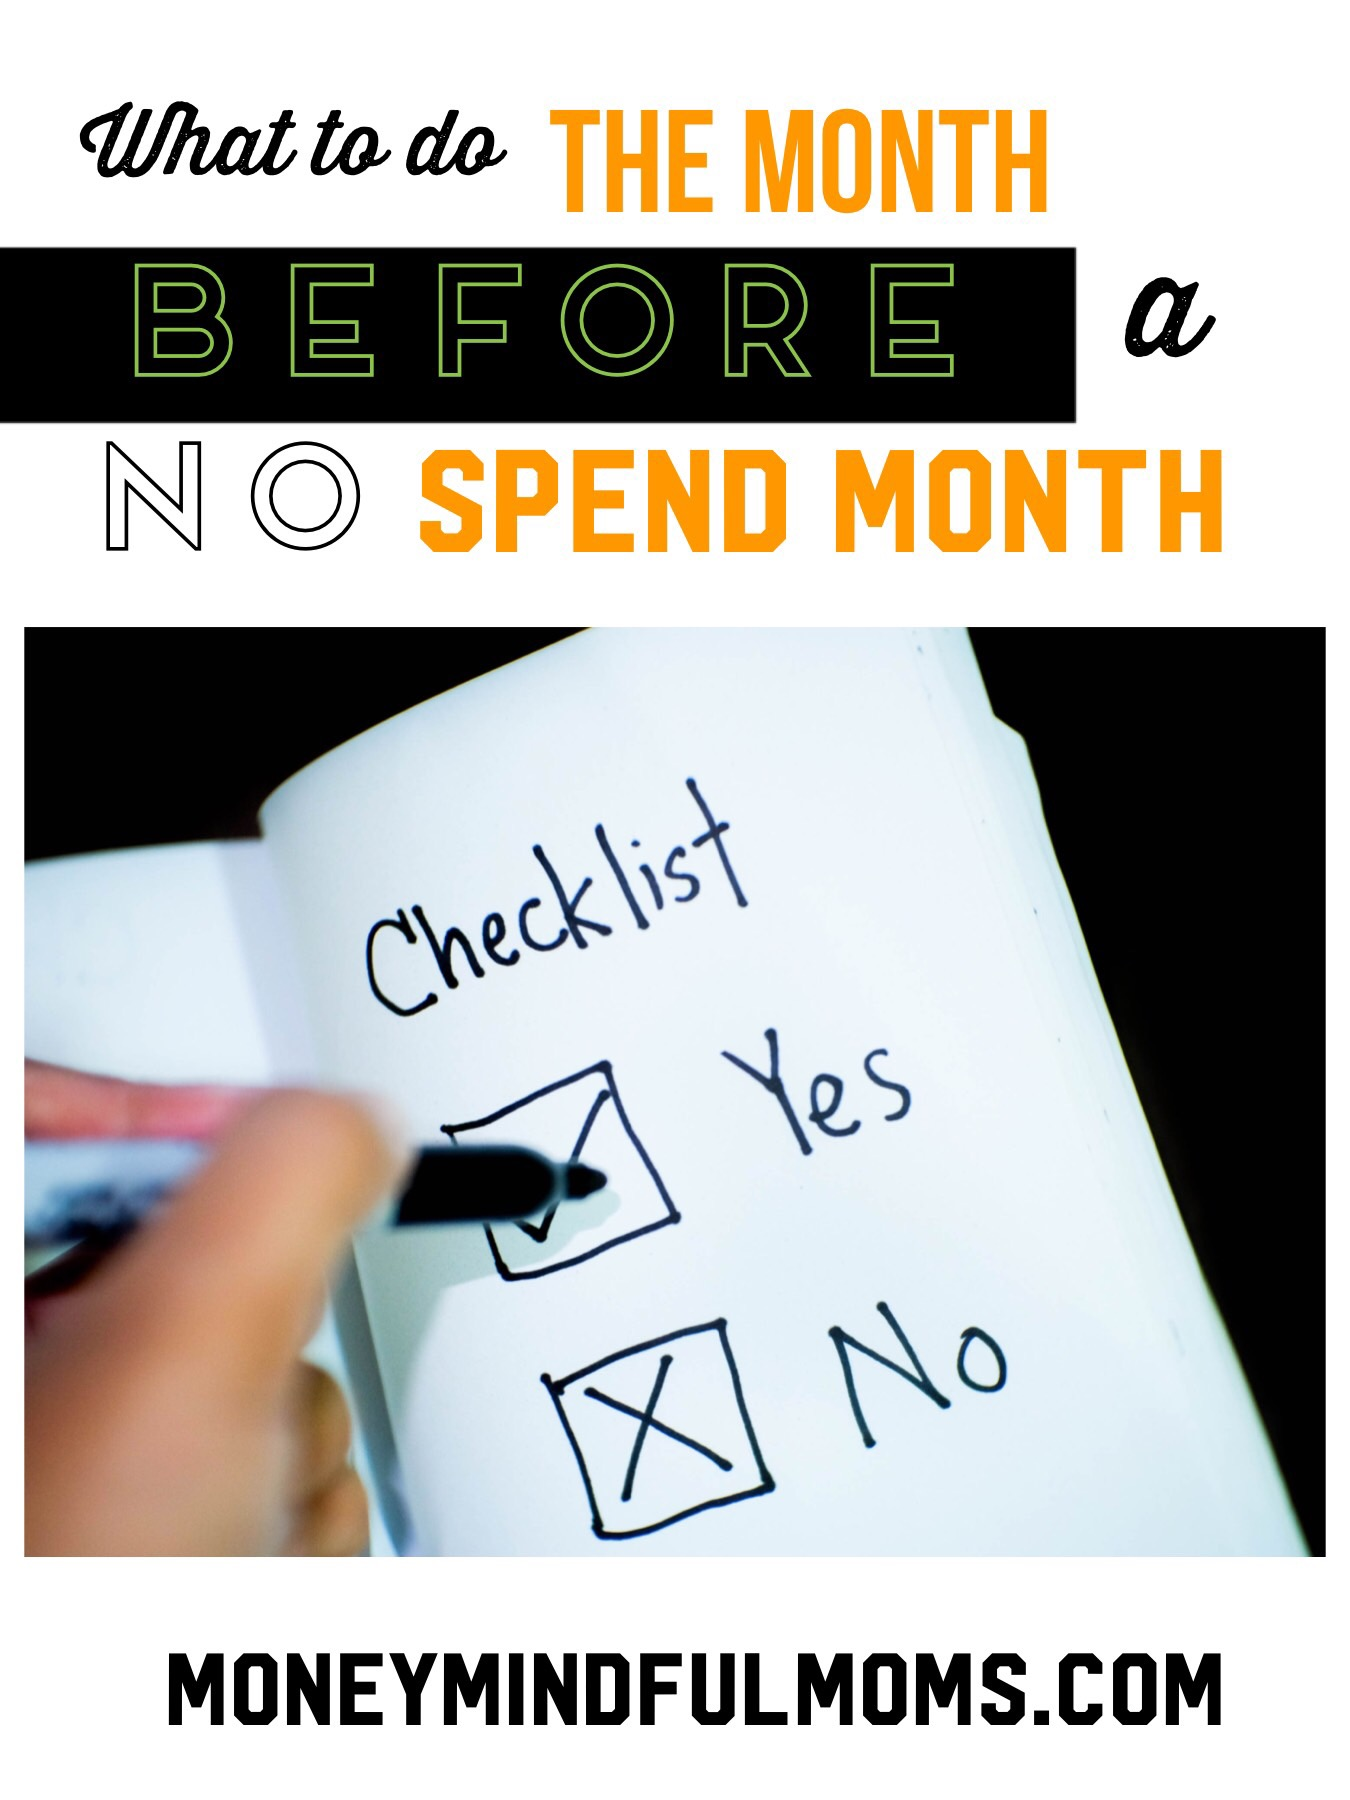 What to do the month BEFORE a no spend month